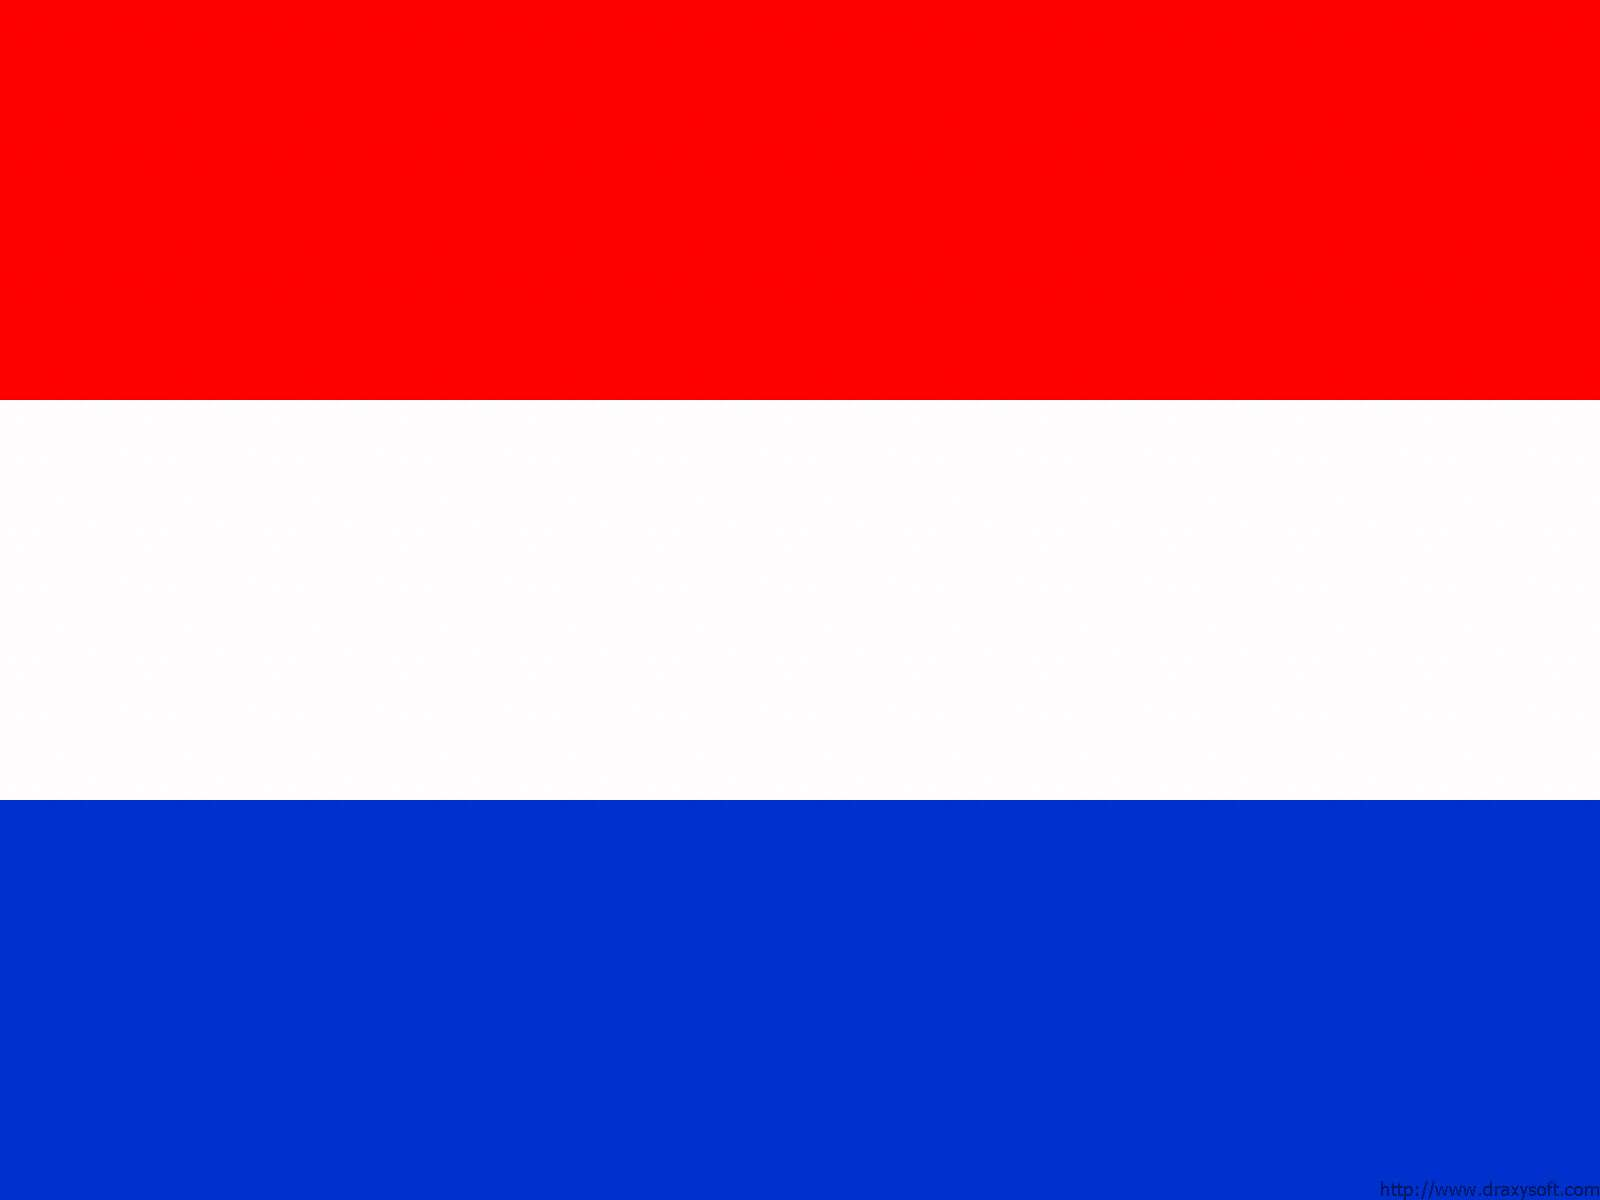 The official flag of the Netherlands